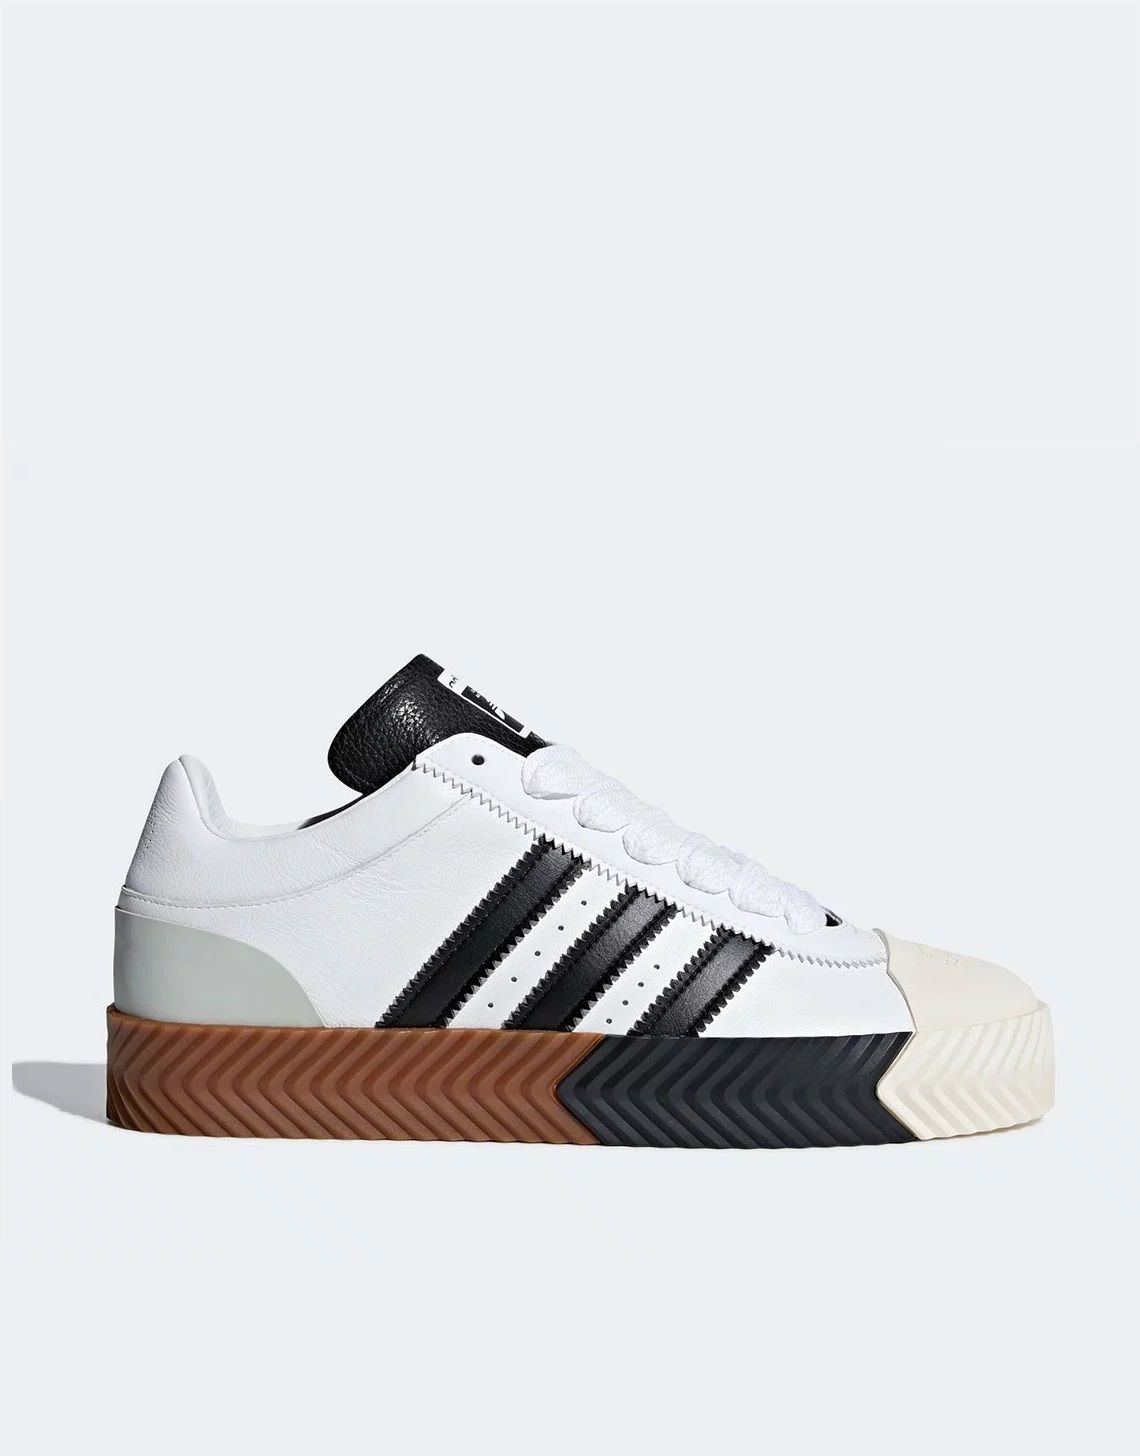 bcc3afbbee9ce adidas Alexander Wang AW Fall 2018 Collection Release Date